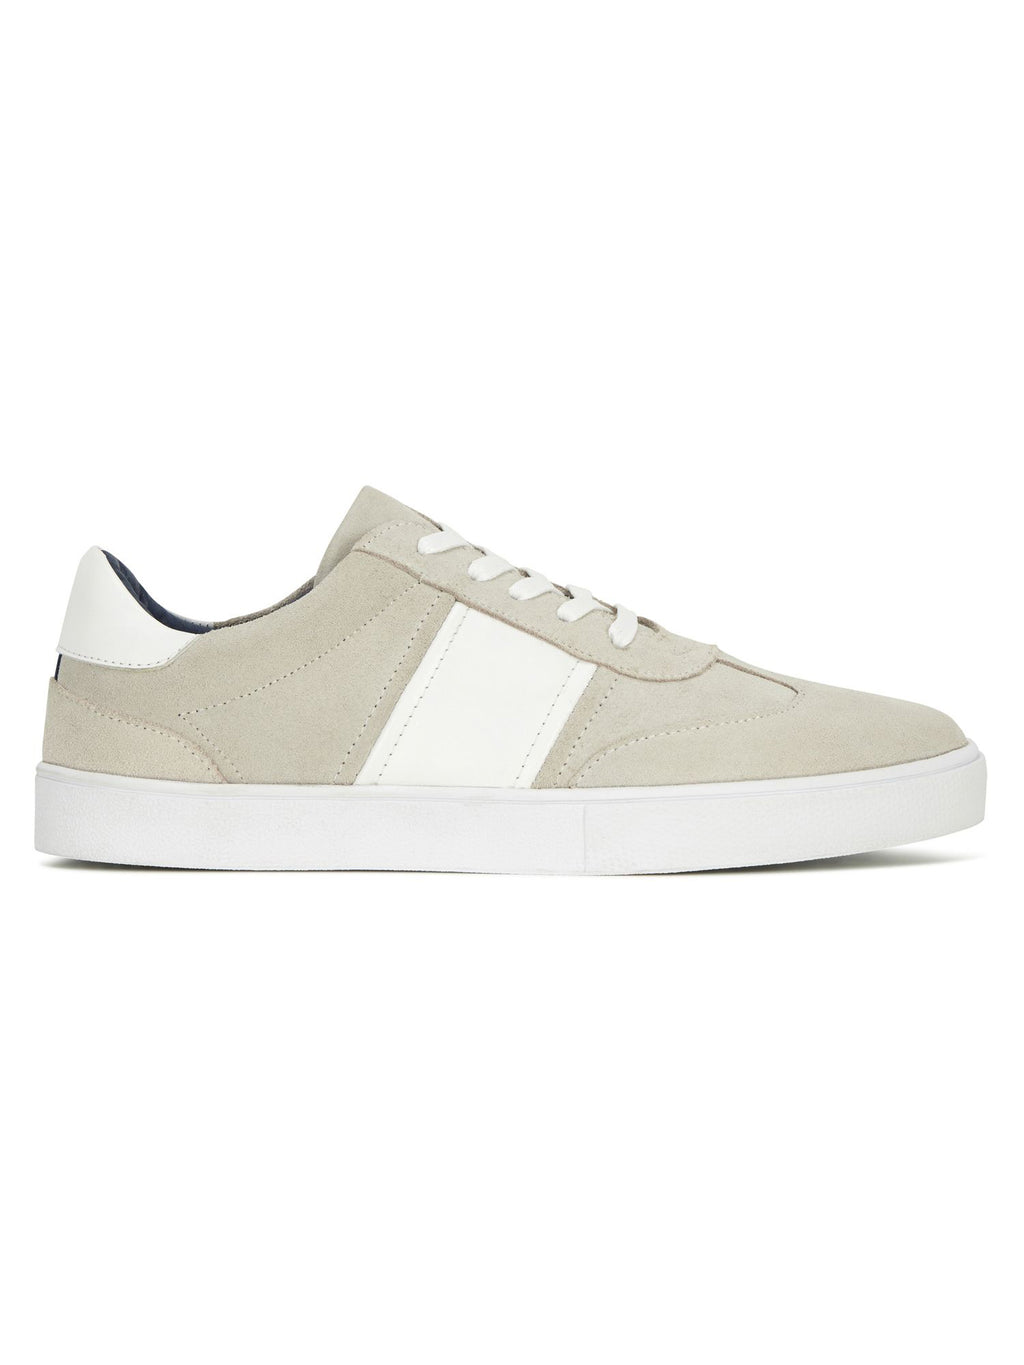 mens suede trainers